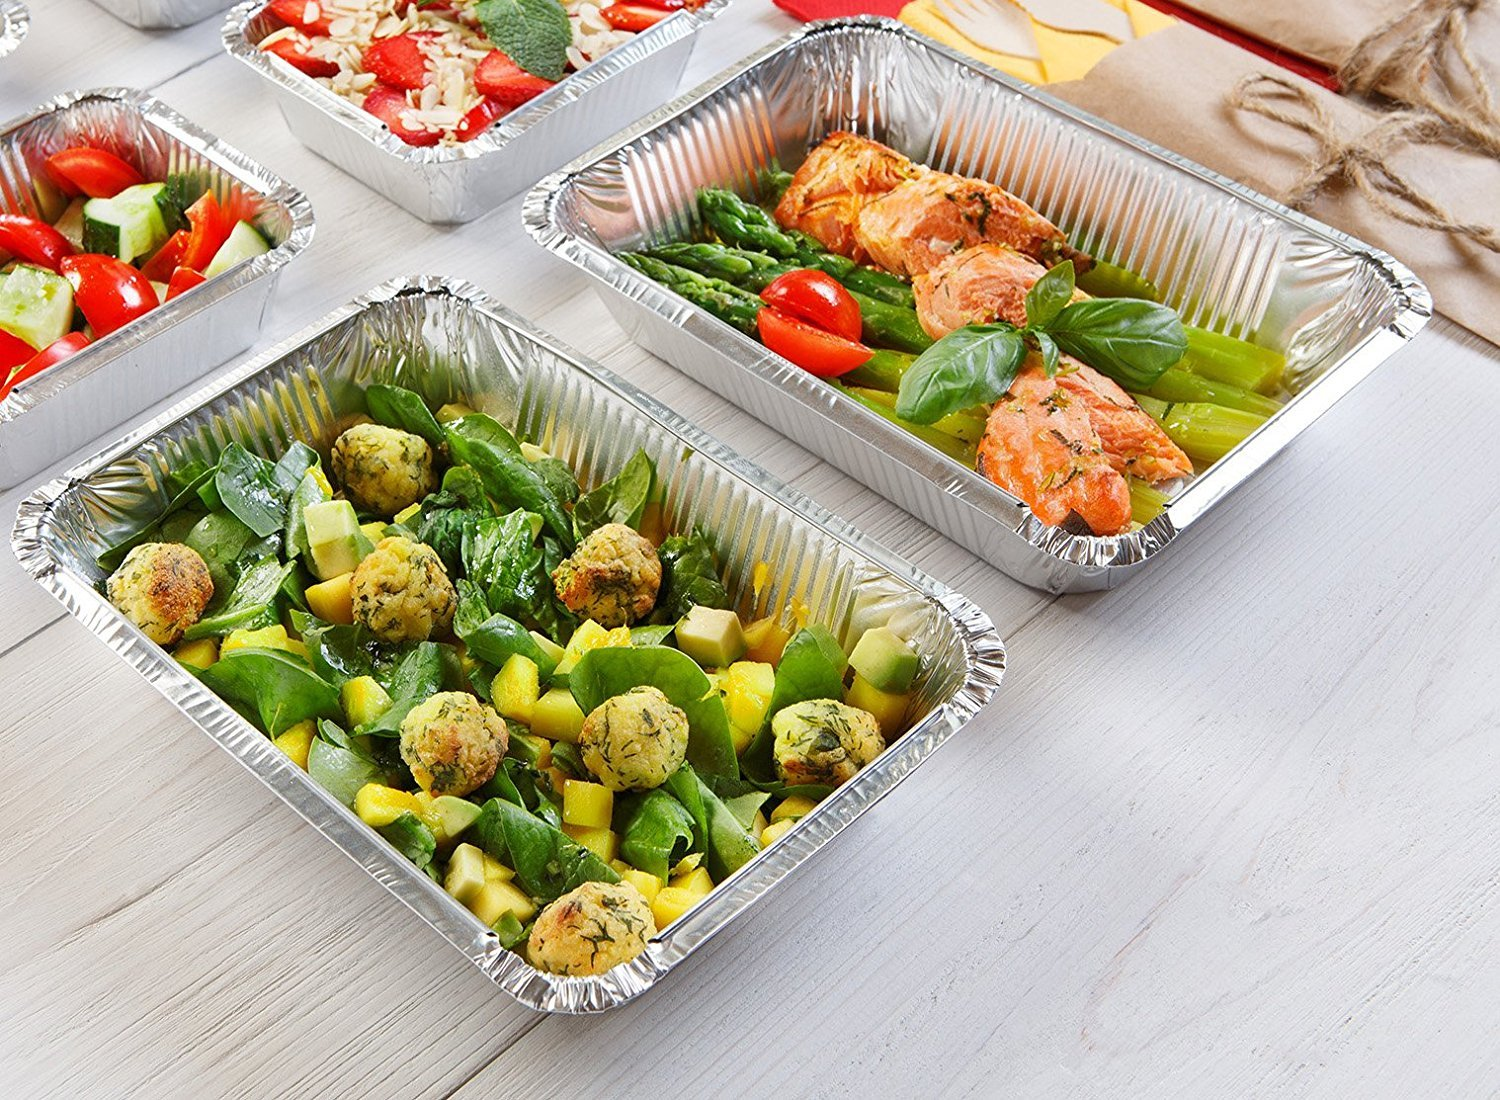 50-Pack Heavy Duty Disposable Aluminum Oblong Foil Pans with Lid Covers | 100% Recyclable Tin Food Storage Tray | Extra-Sturdy Containers for Cooking, Baking, Meal Prep, Takeout - 8.4'' x 5.9'' - 2.25lb by DCS Deals (Image #3)